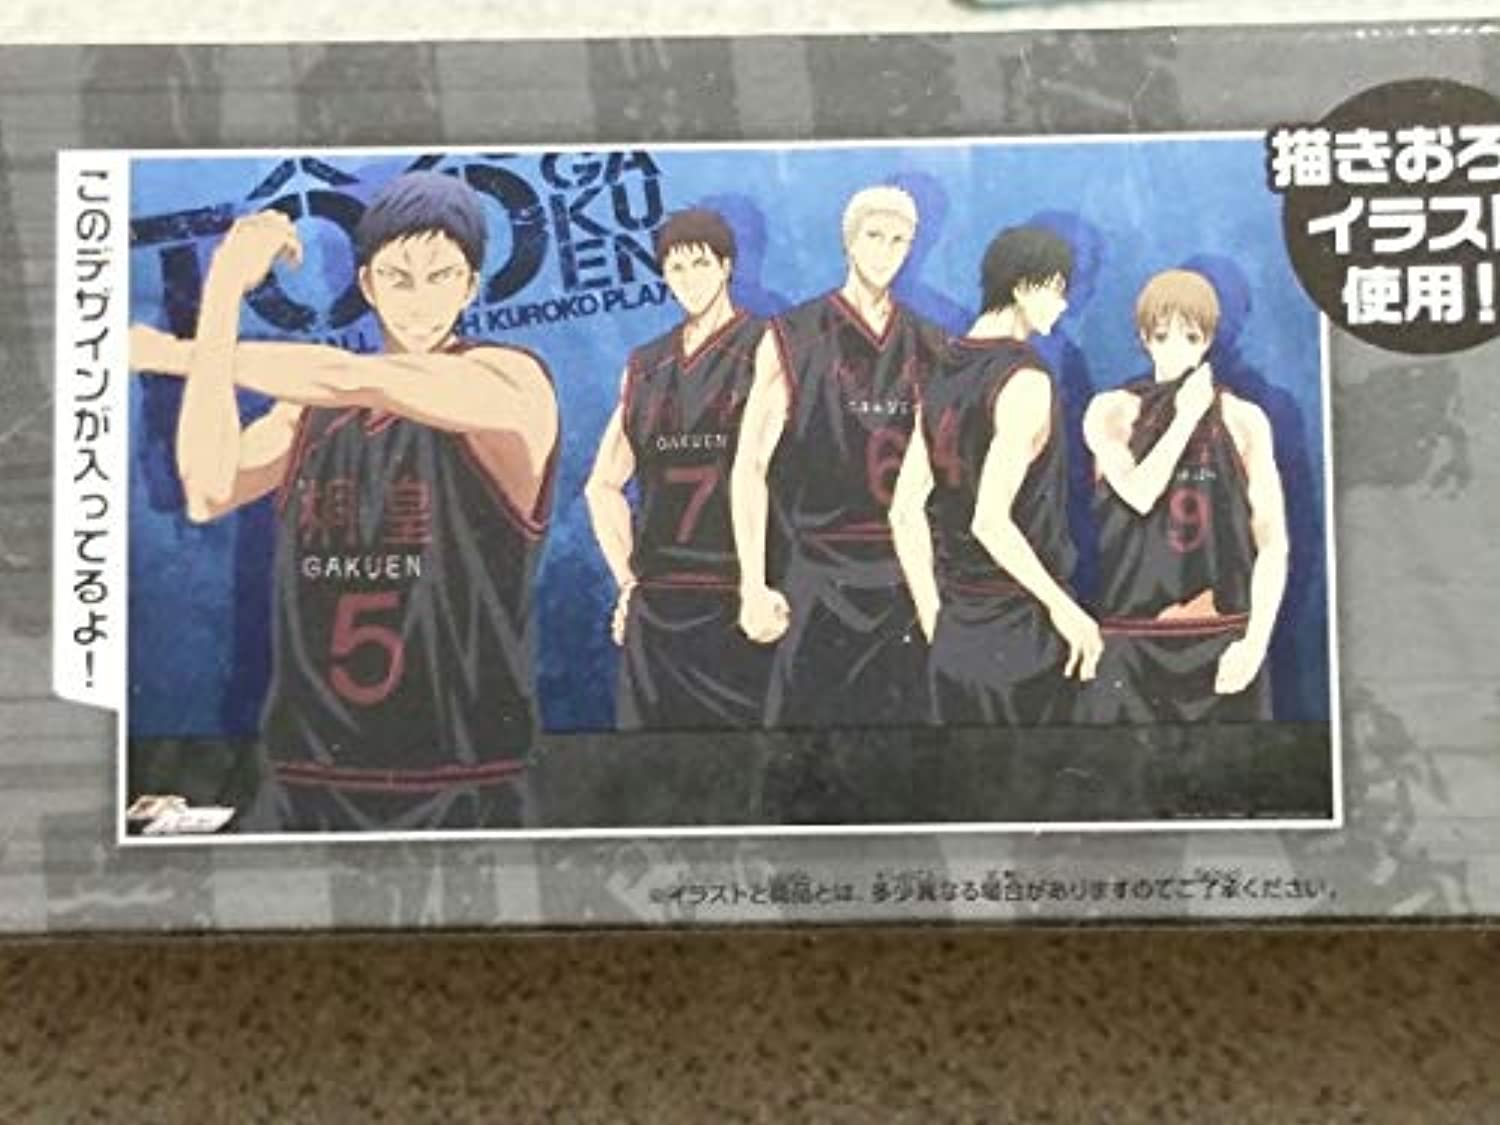 Kuroko's Basketball Deluxe Clear Poster  Kirisumeragi GakuenYangquan  all two (Japan import   The package and the manual are written in Japanese)